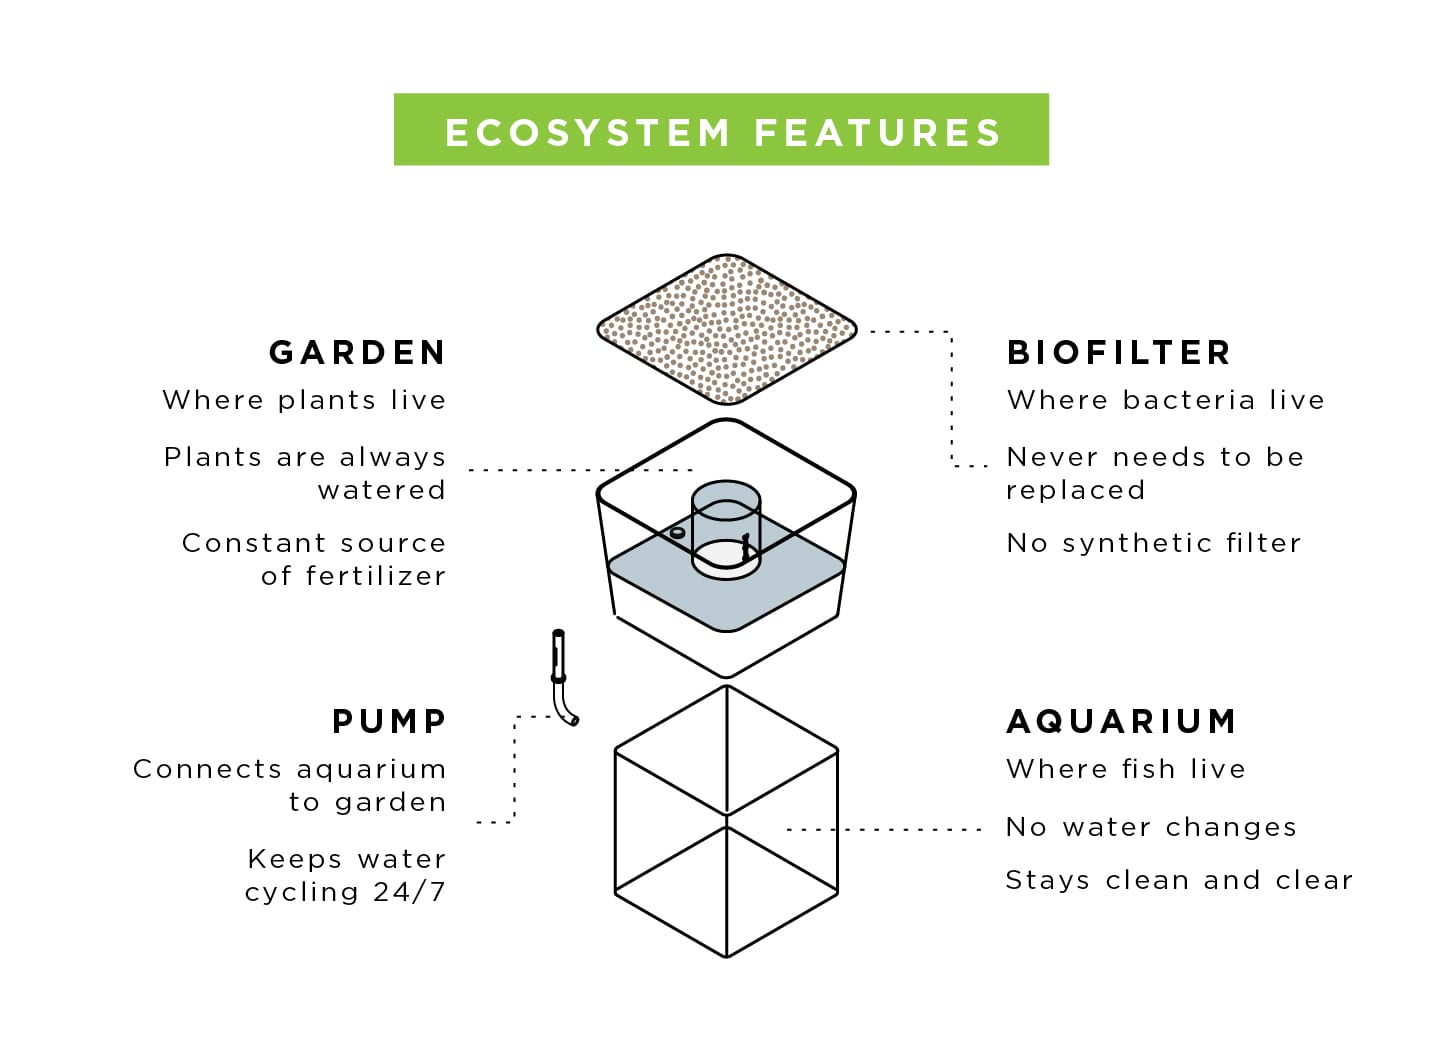 Just Learn - Ecosystem features